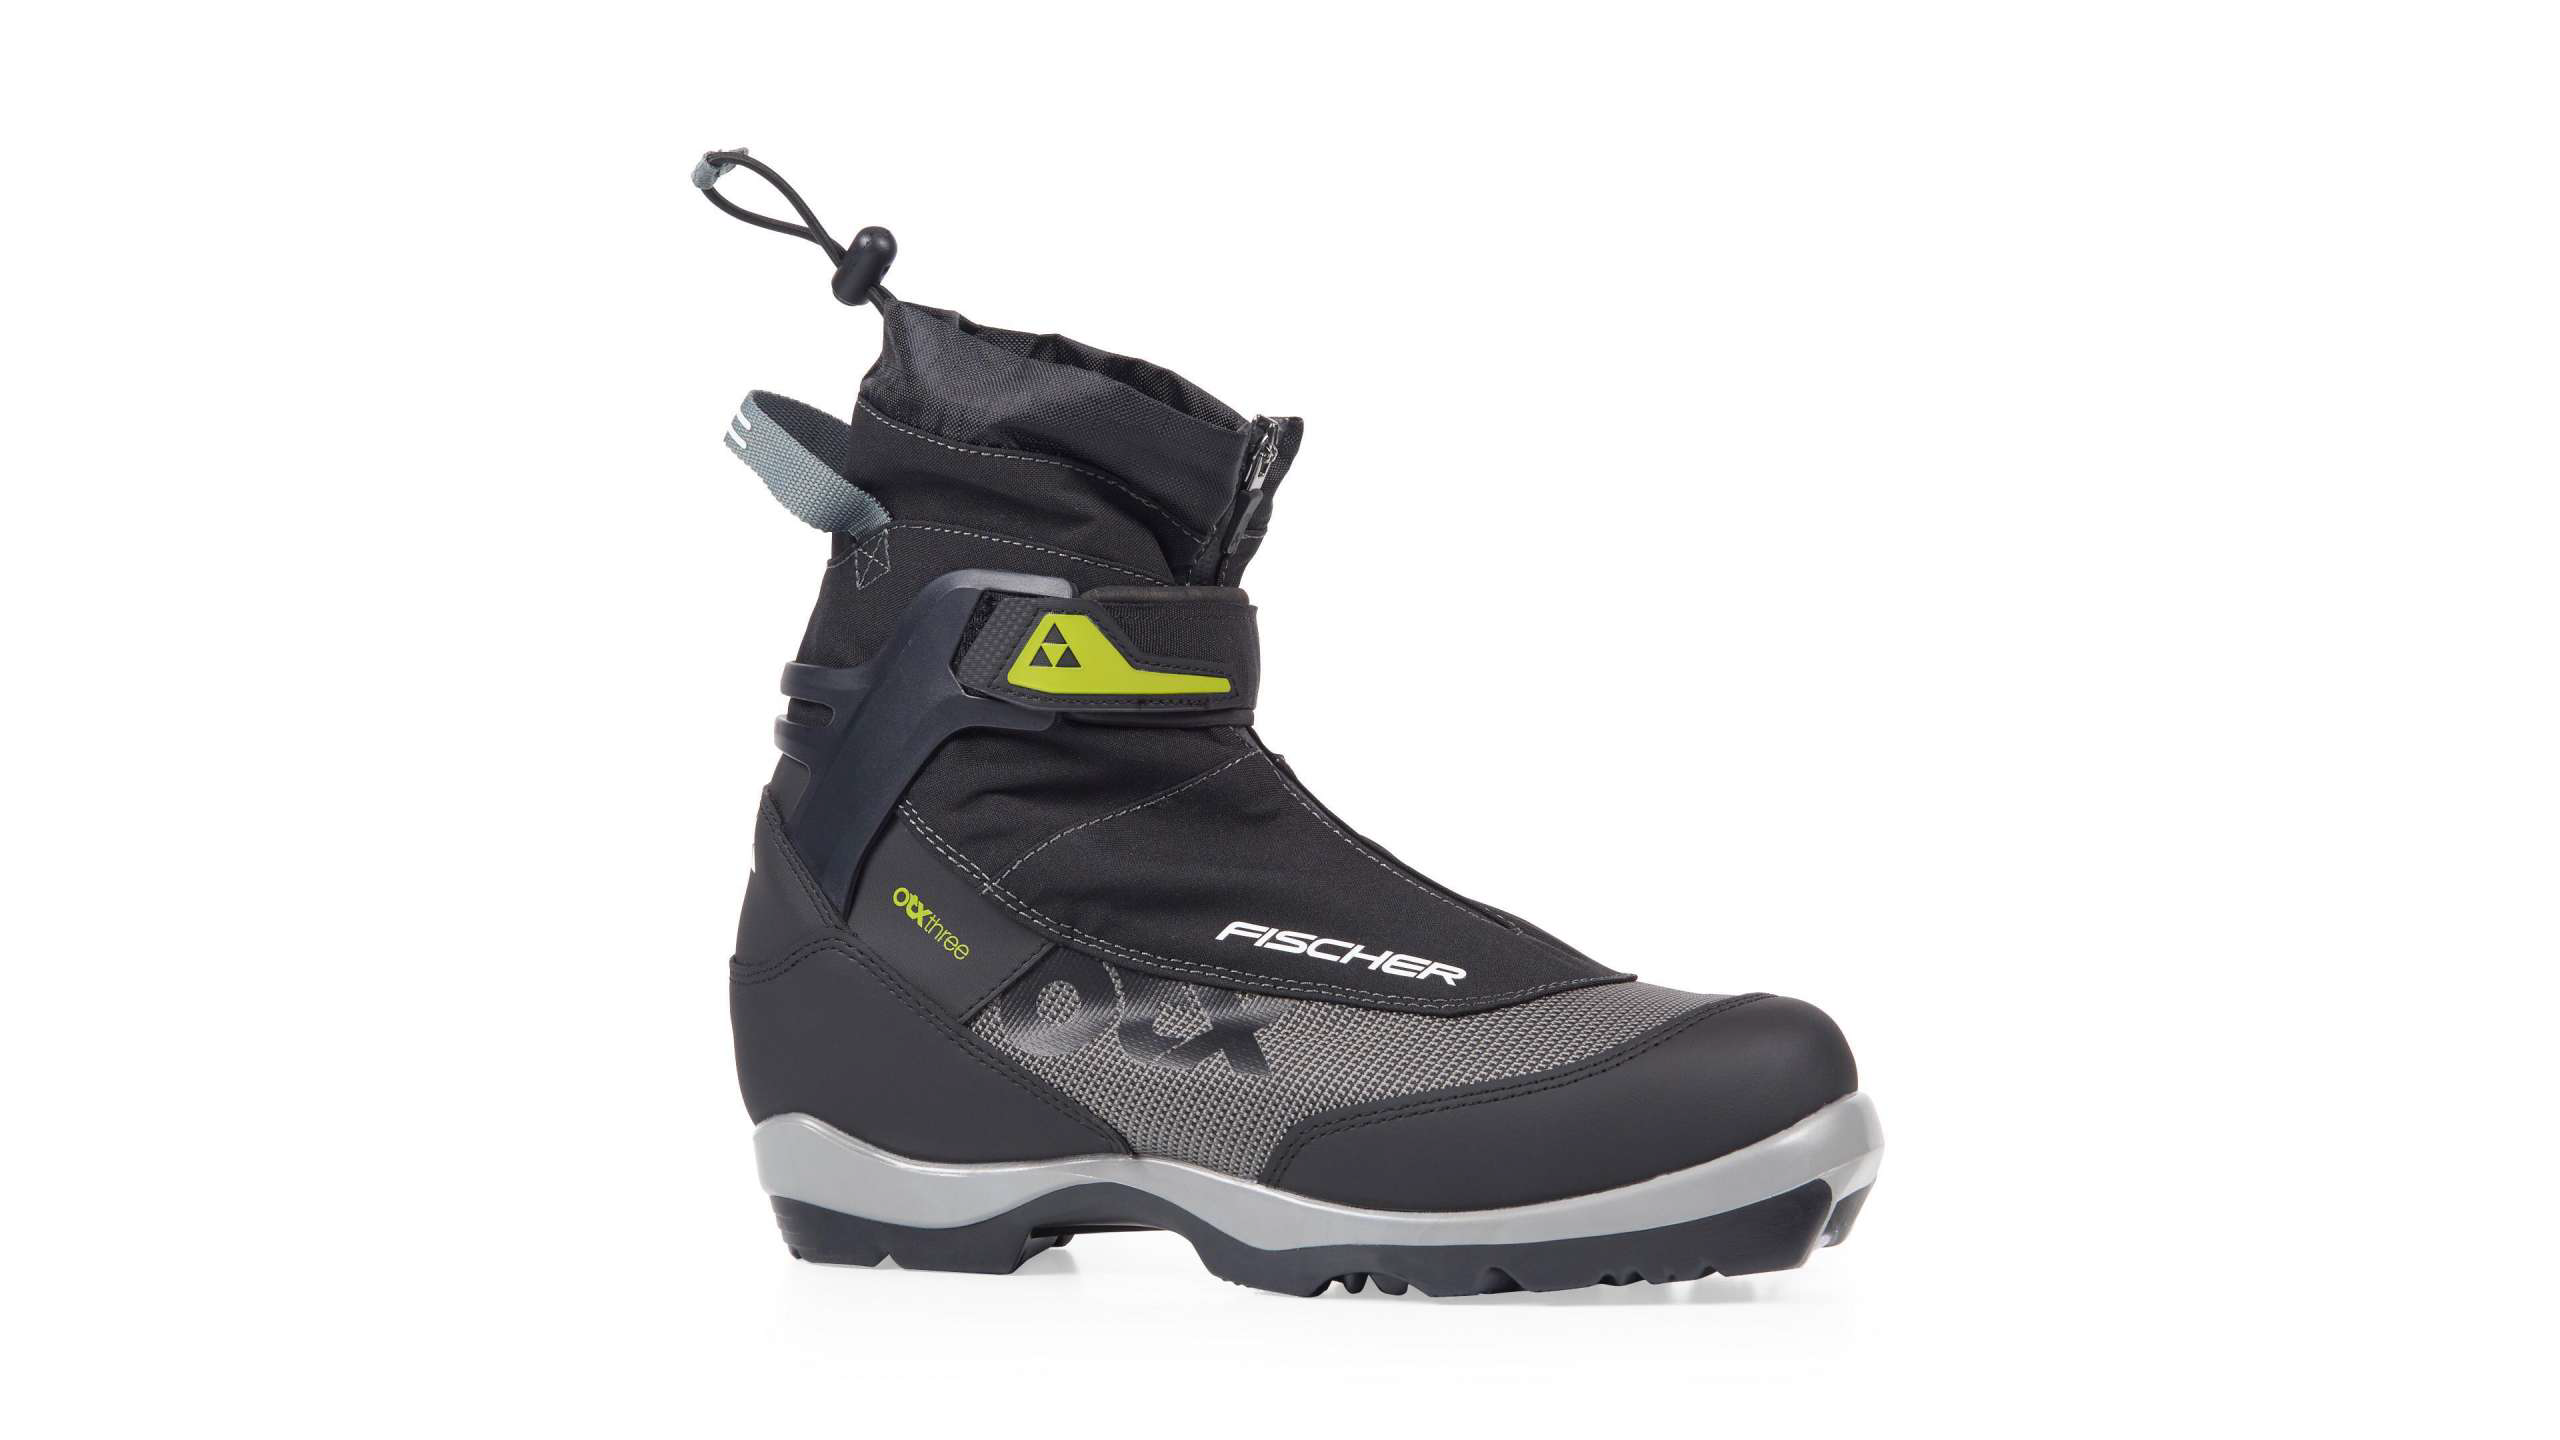 Demo Cross Country Ski Boot Fischer Offtrack 3 - NNN BC Image